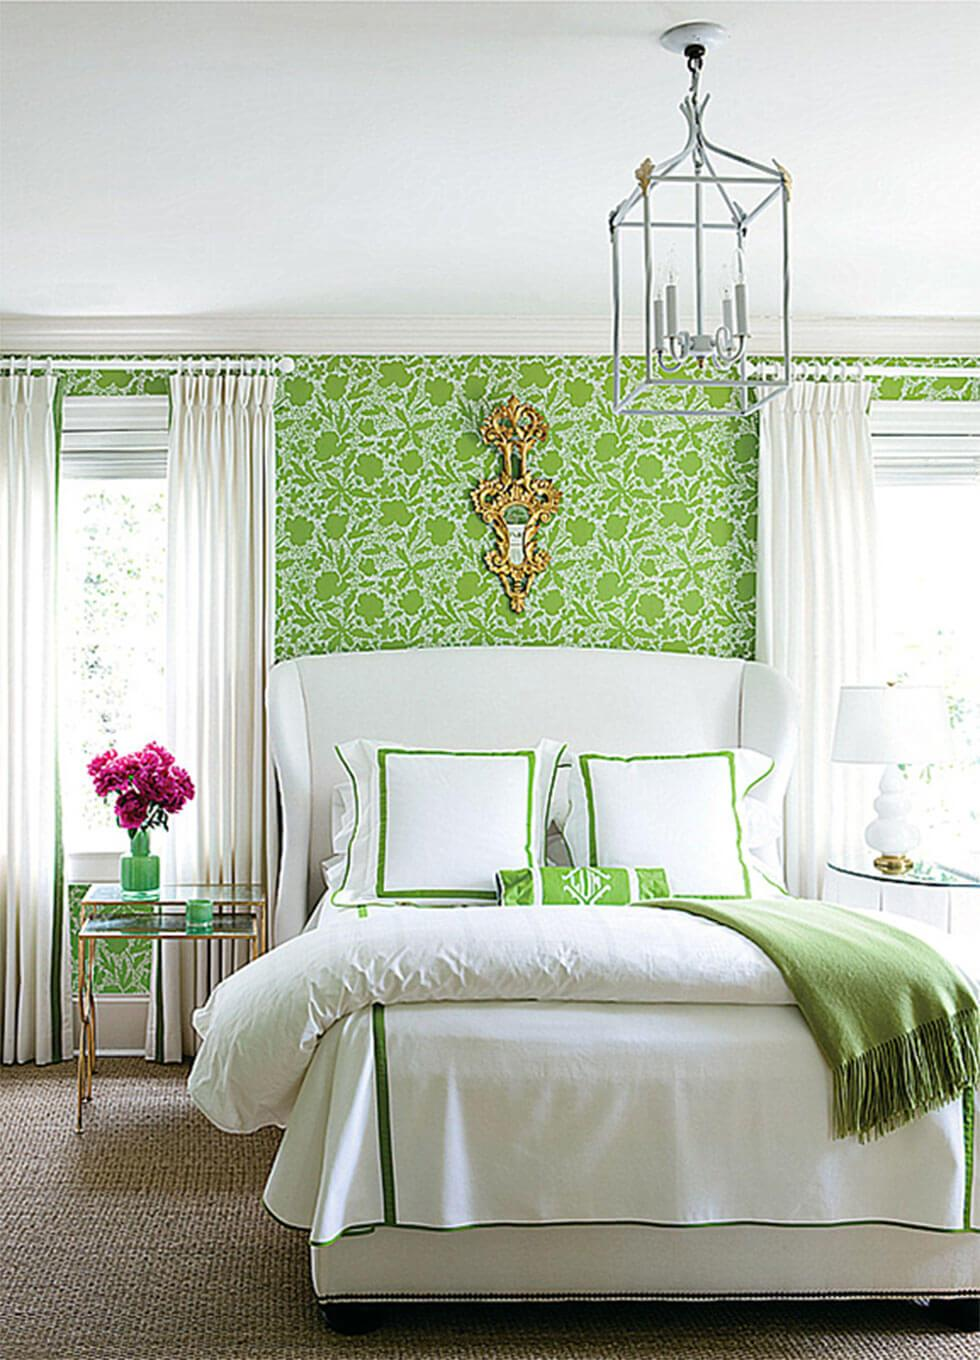 Lime green bedroom with cosy white bedding in a classic mid-century style.